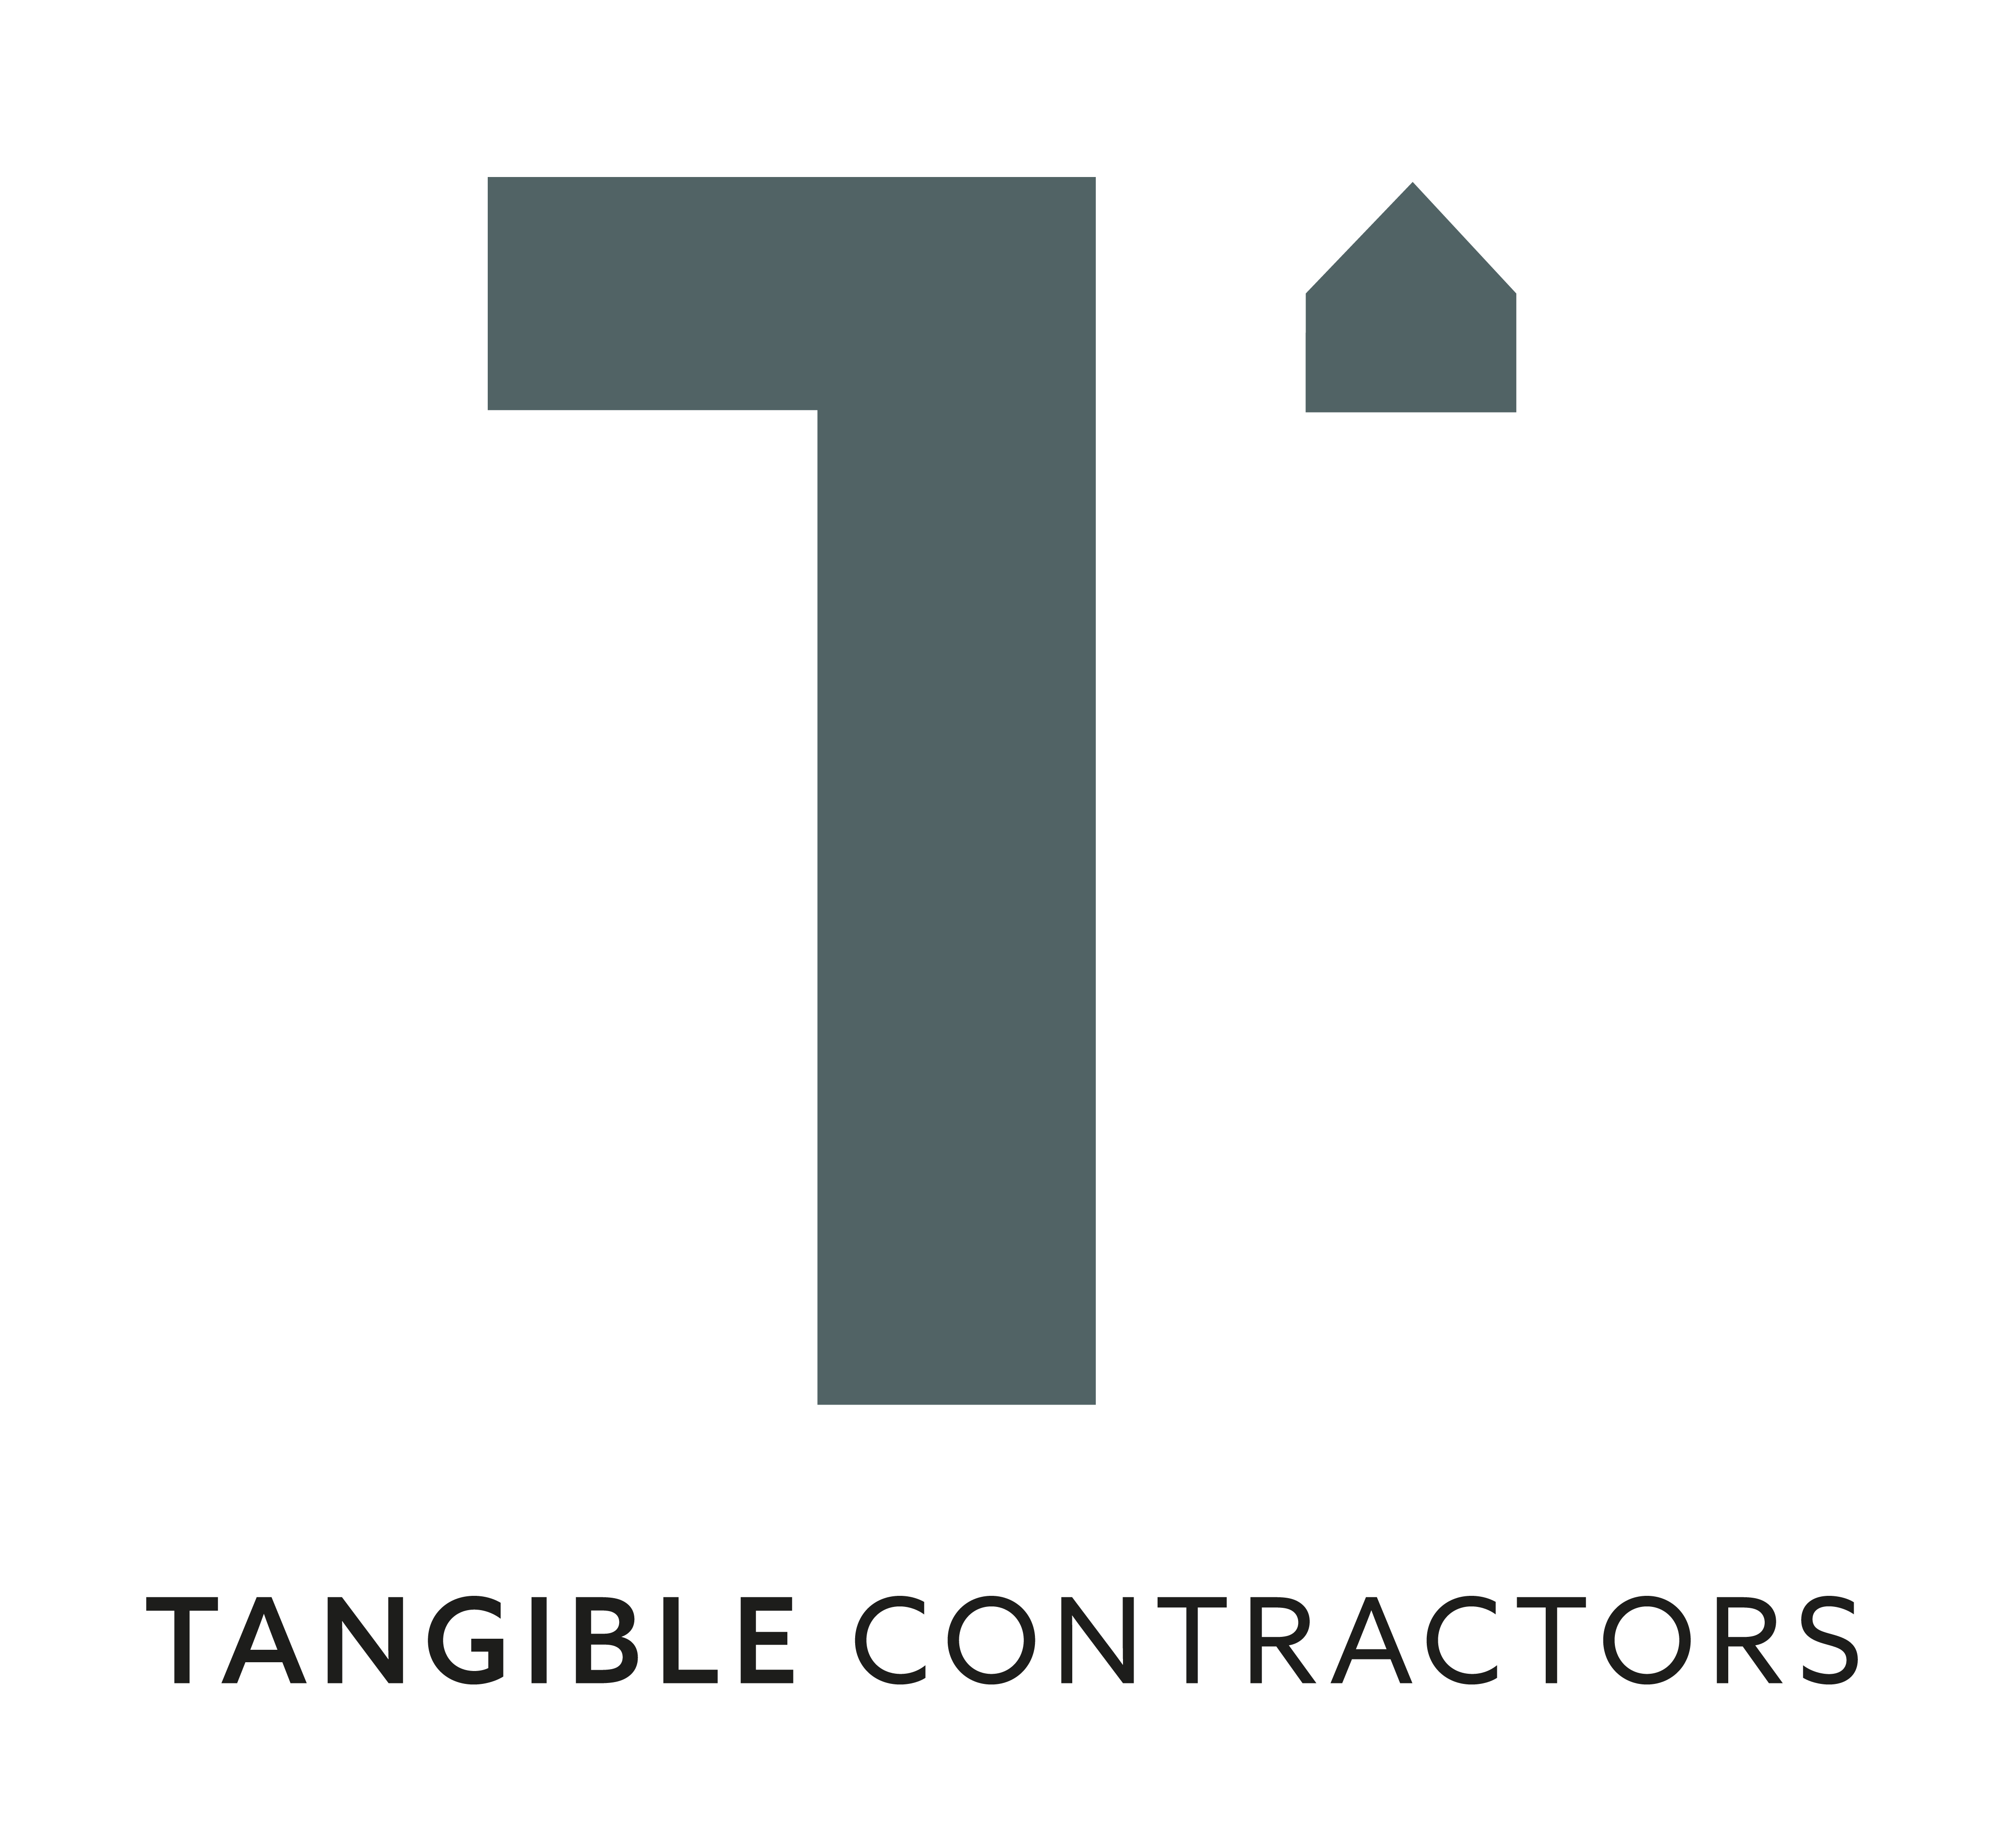 Tangible Contractors (TI UK) Limited